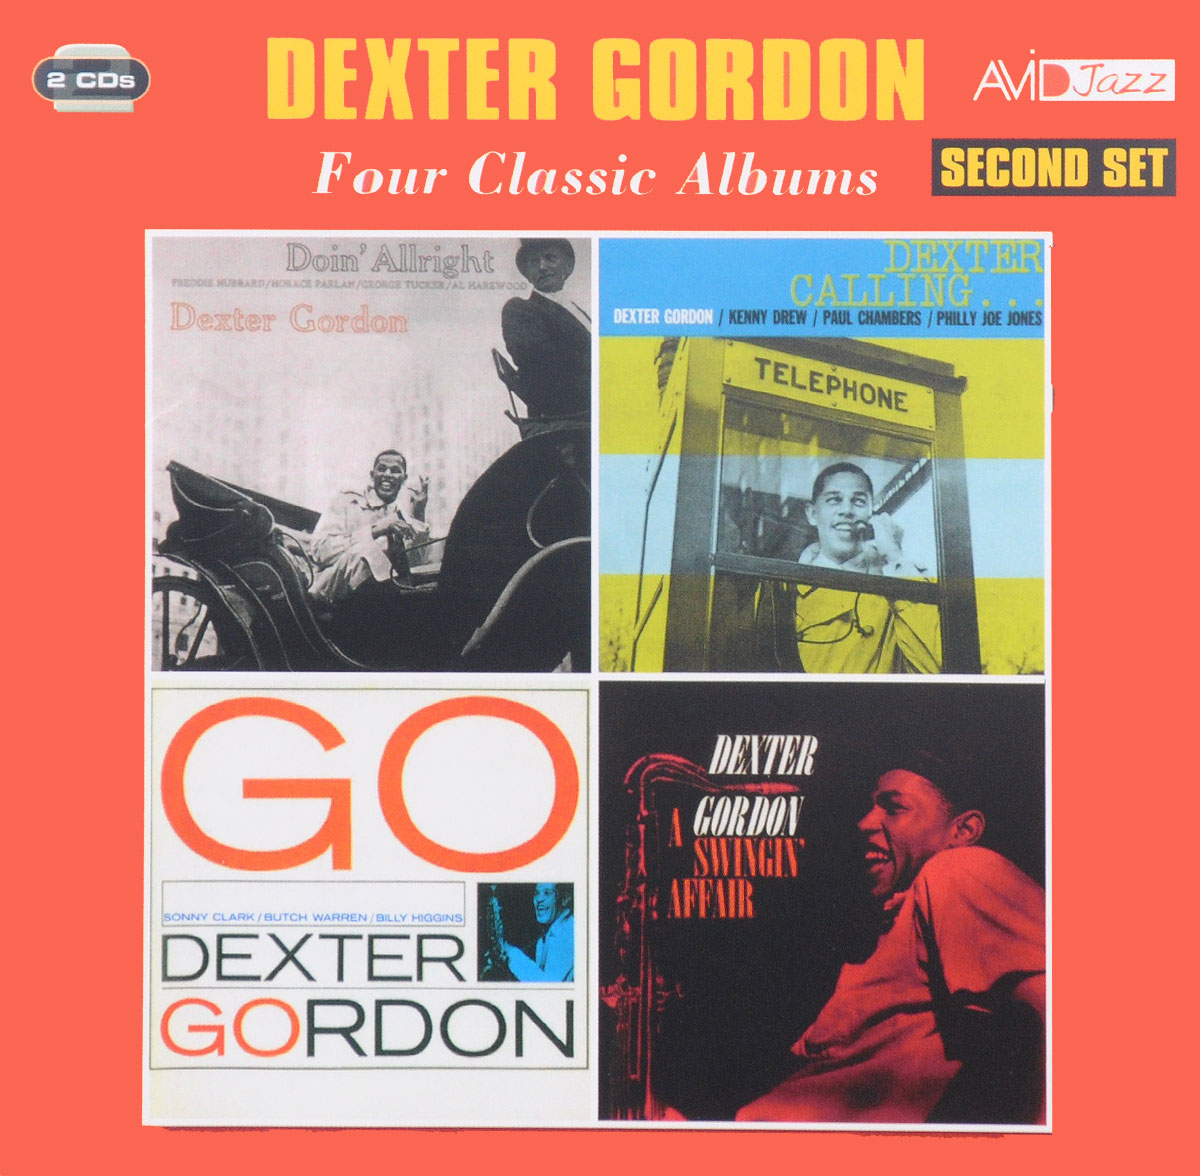 Декстер Гордон Avid Jazz. Dexter Gordon. Four Classic Albums. Second Set (2 CD) декстер гордон dexter gordon our man in paris